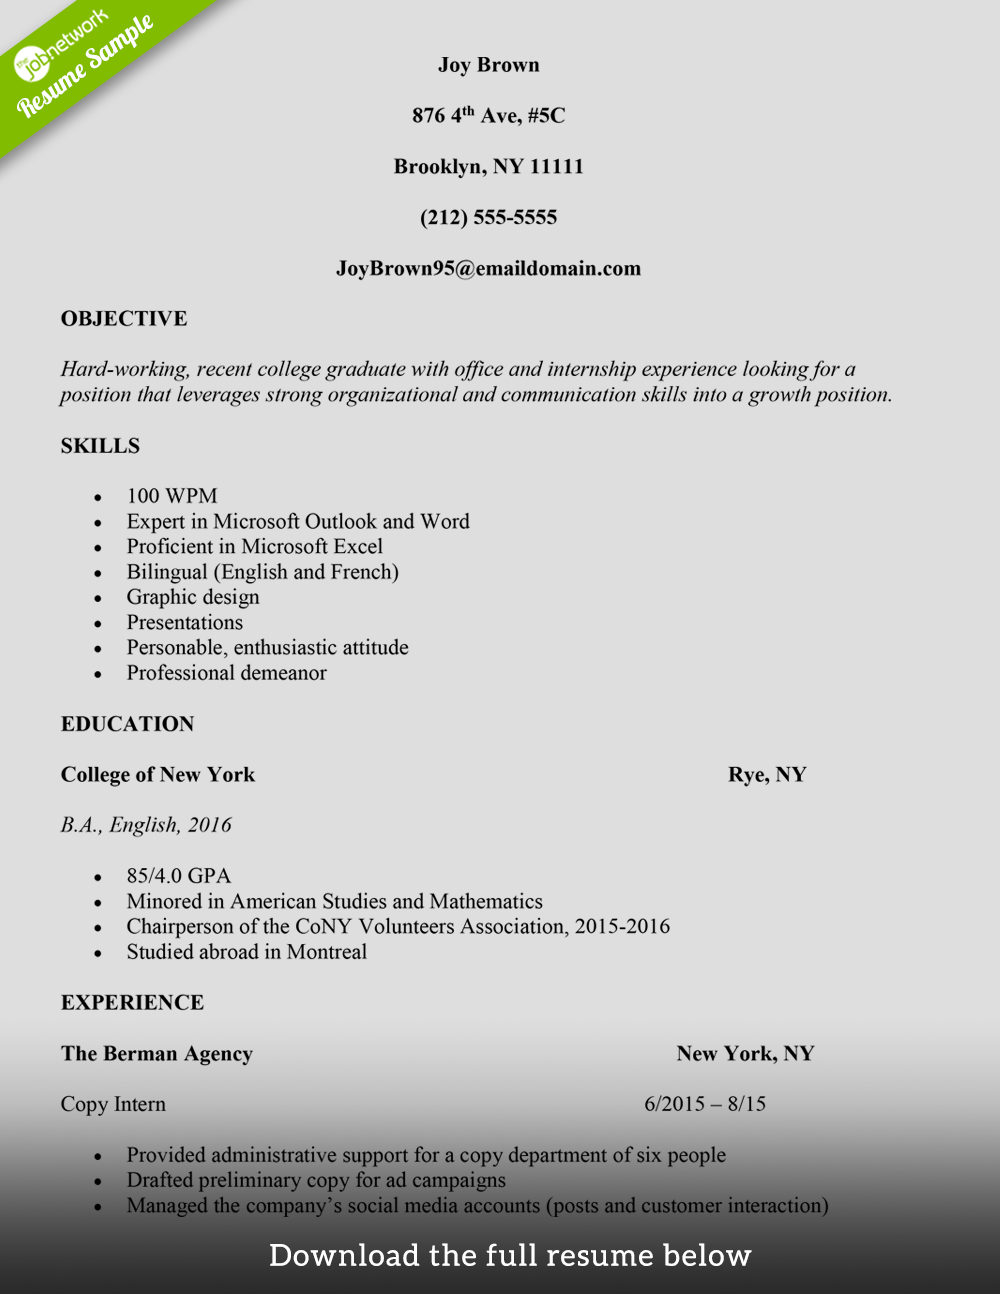 administrative assistant resume joy brown. Resume Example. Resume CV Cover Letter